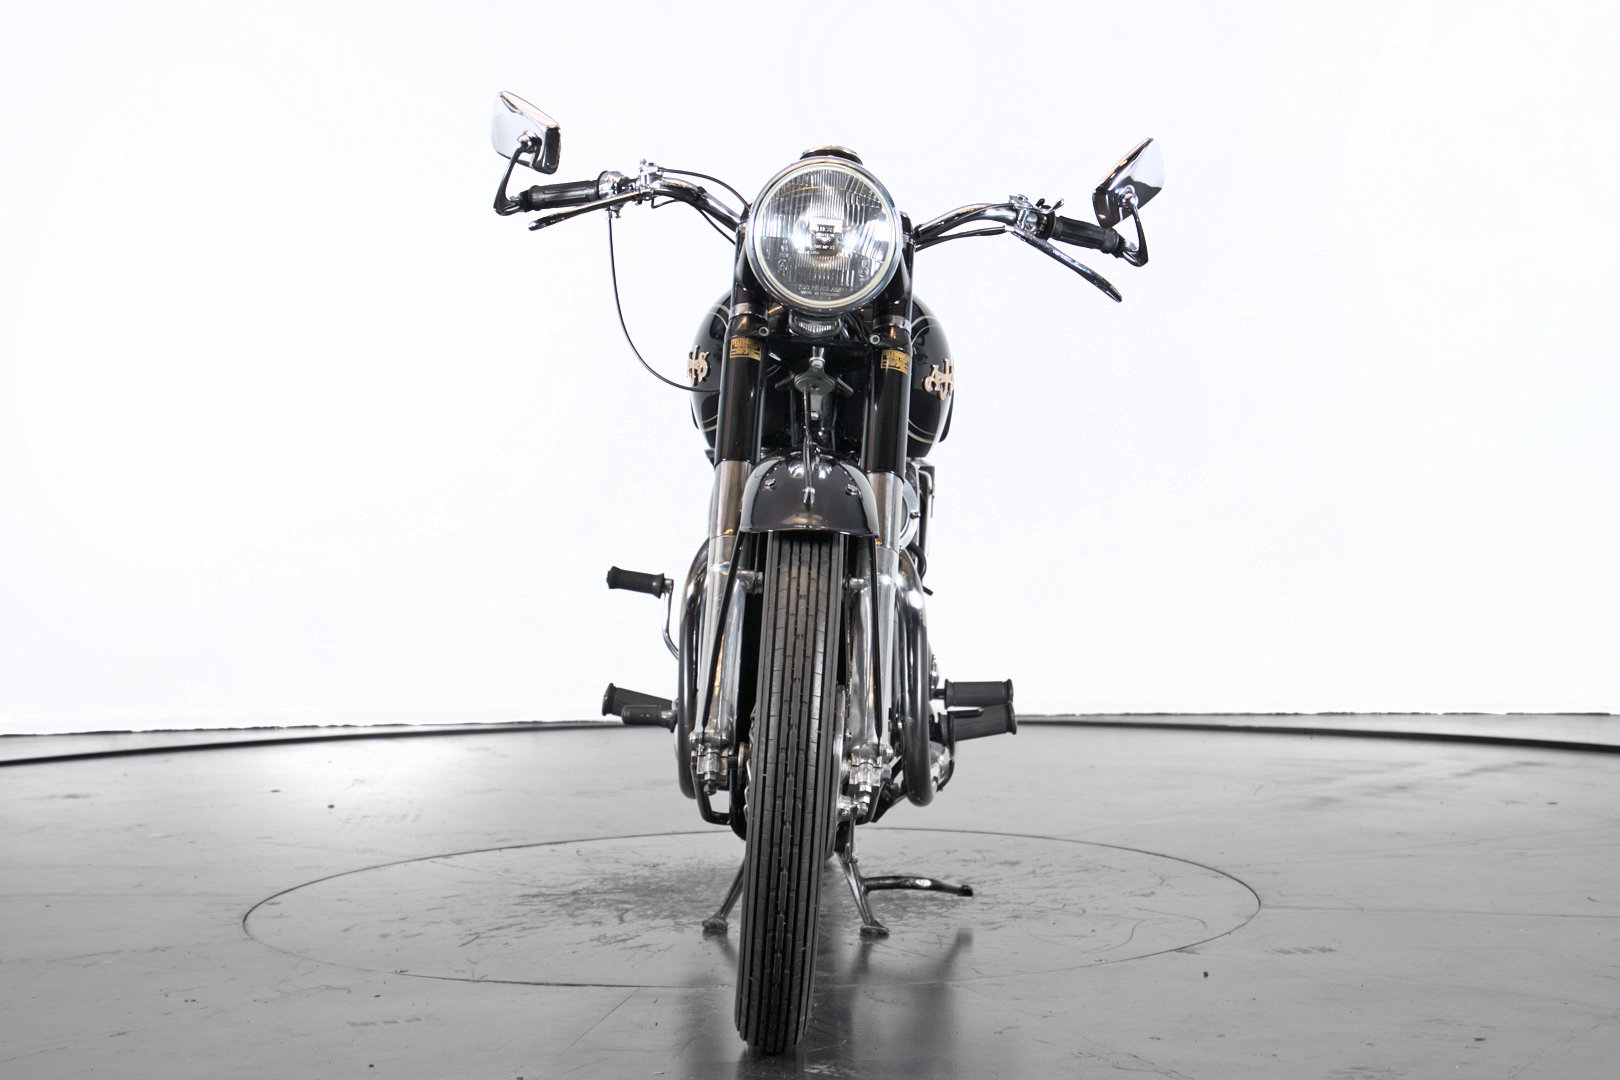 AJS - 500 - 1952 For Sale (picture 3 of 6)